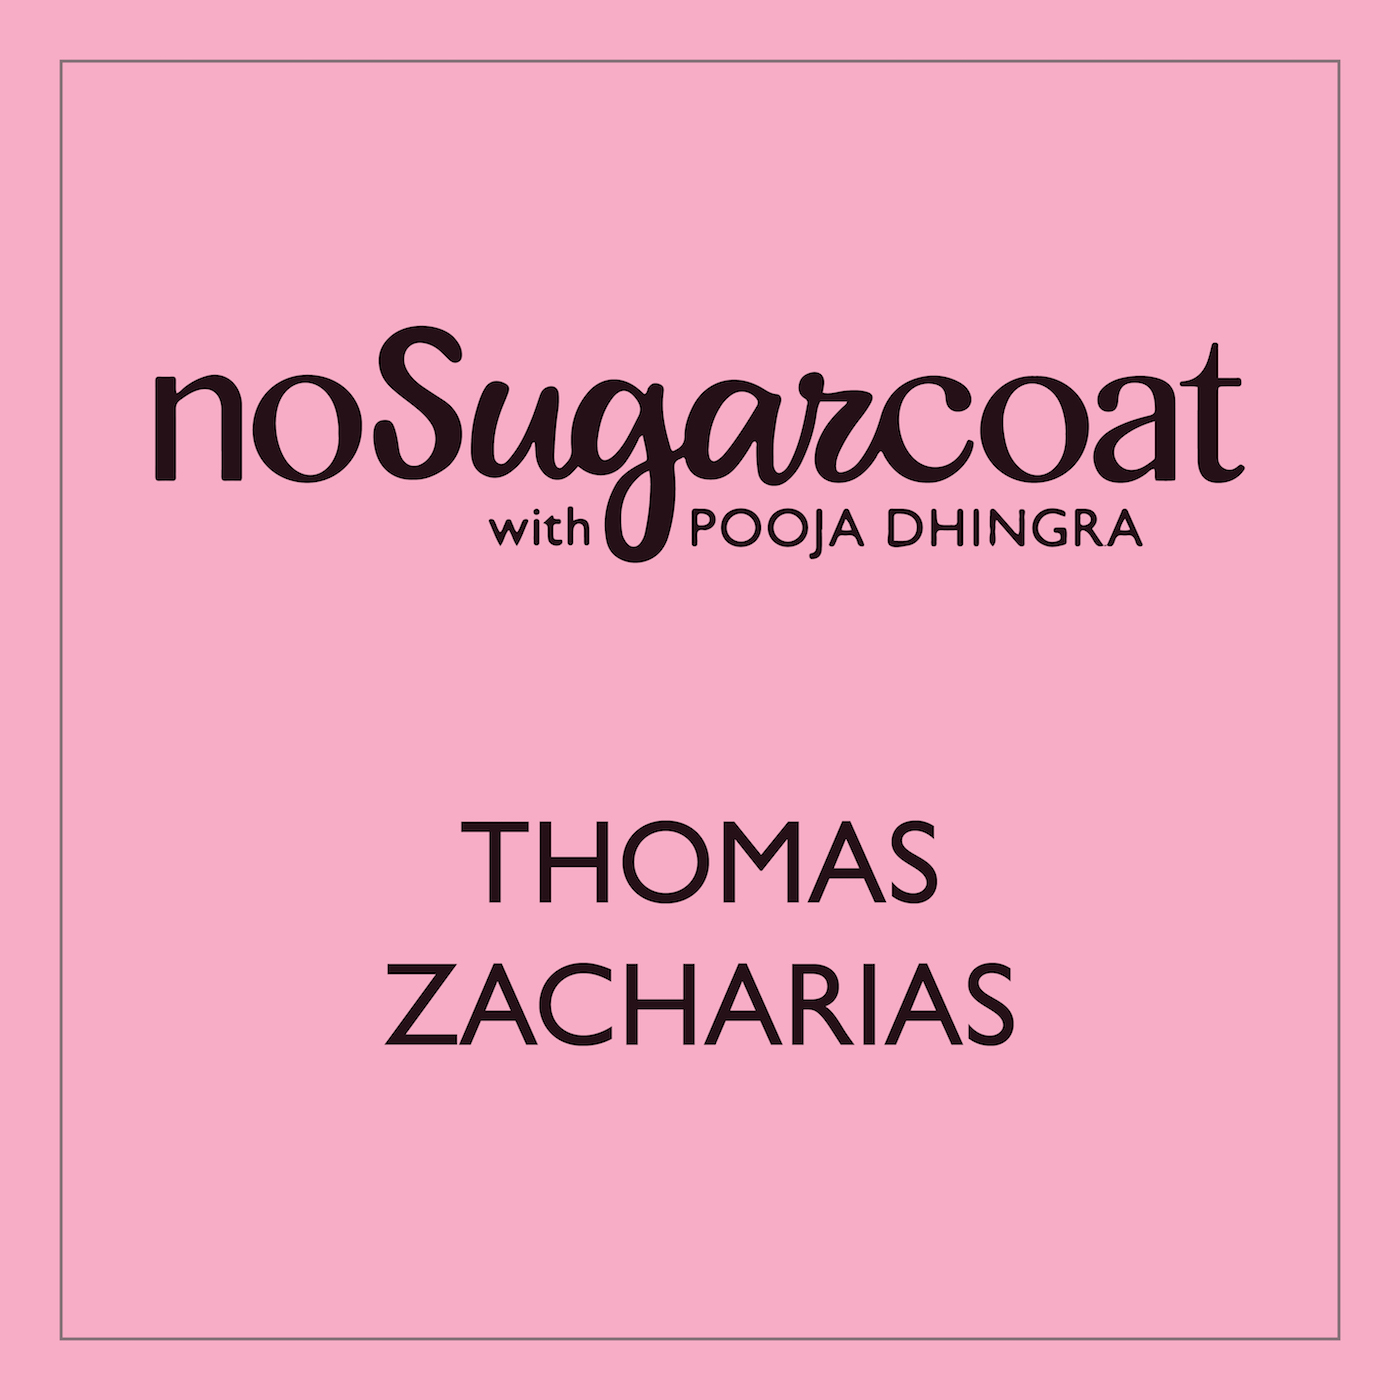 Thomas Zacharias